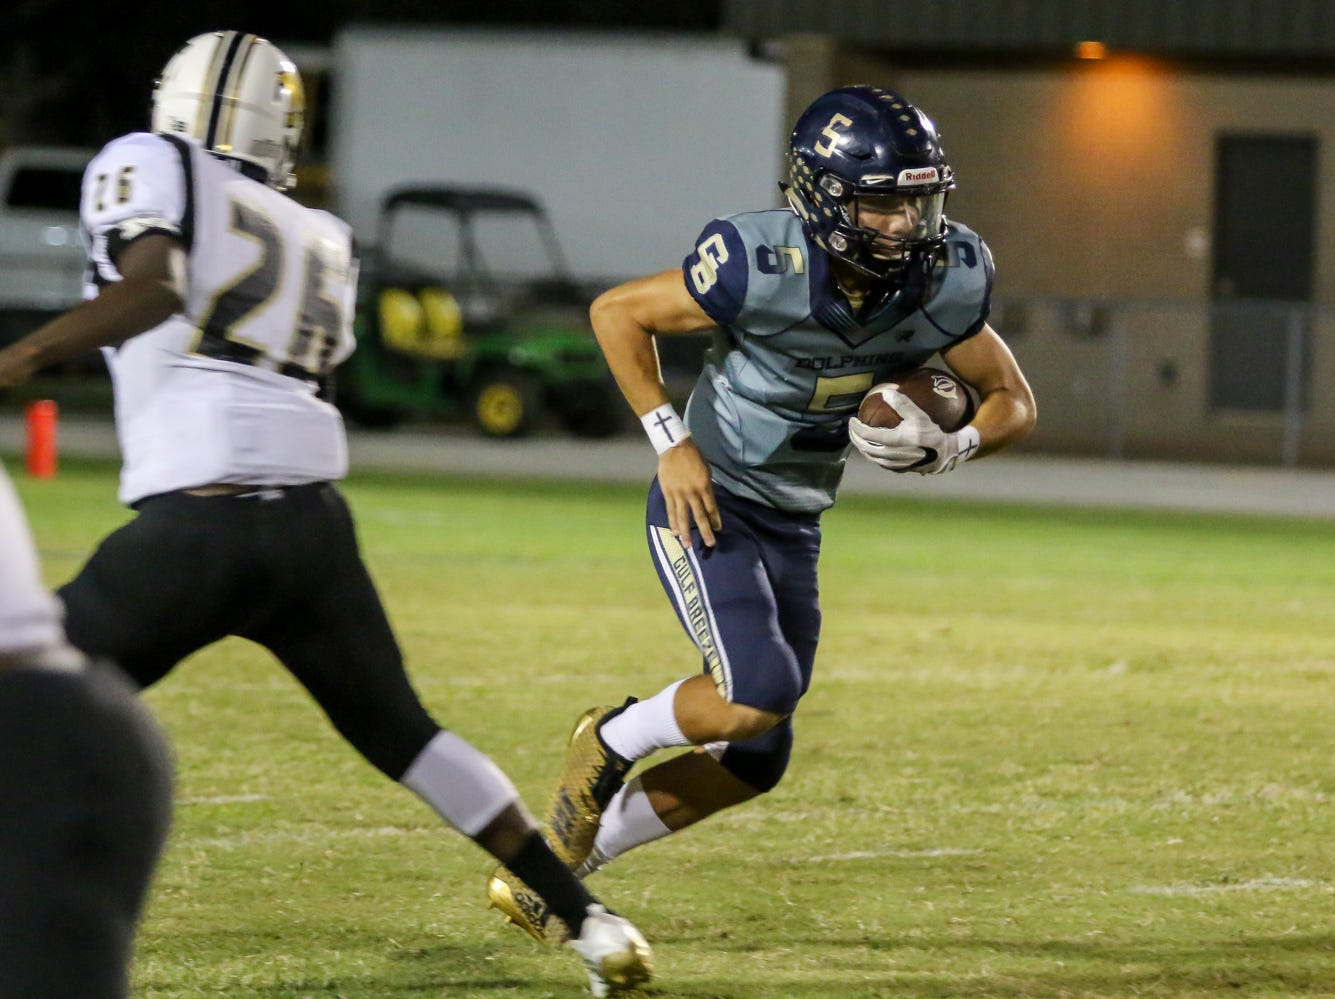 Gulf Breeze quarterback Dylon Kelley (5) keeps the ball and jukes left against Milton's Isaiah Rushing (26) in the District 2-6A game at Gulf Breeze High School on Friday.